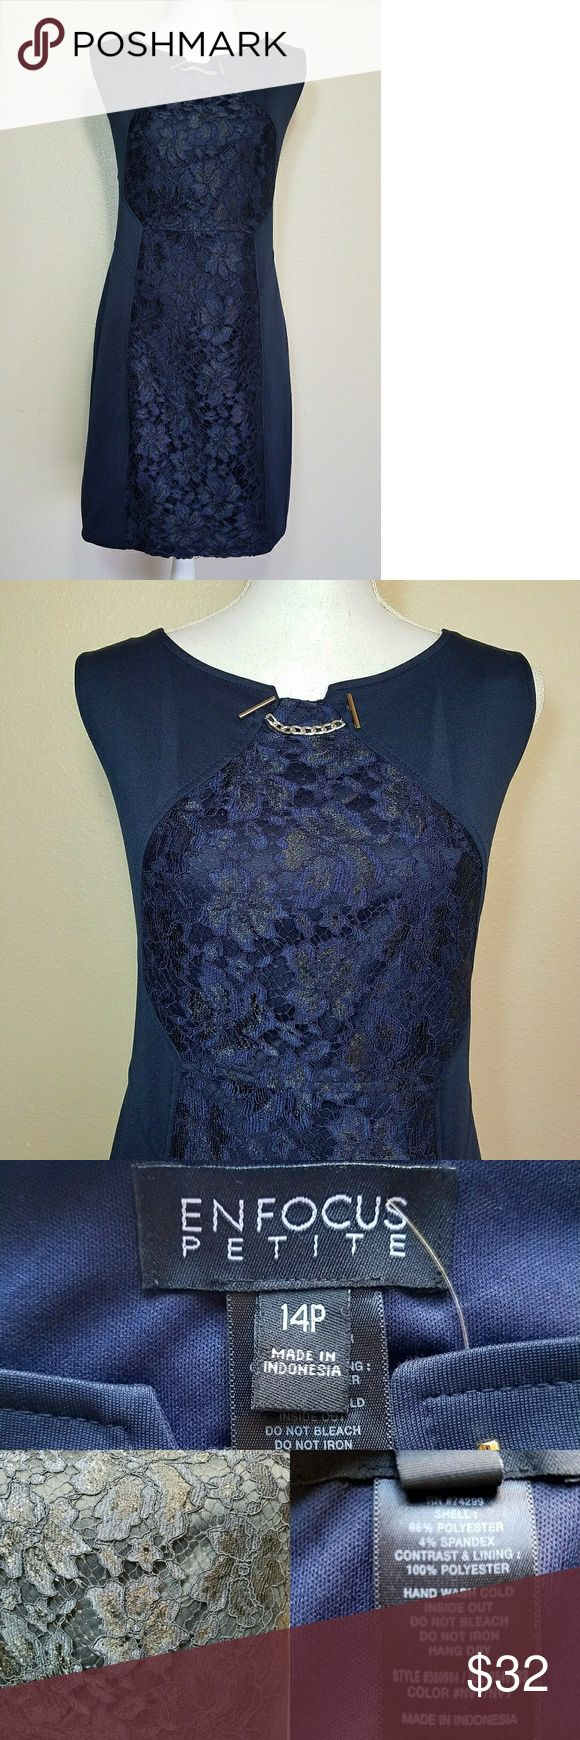 """ENFOCUS Petite Dress Lace Center Navy 14P ENFOCUS Petite Womens Dress Lace Block Center Sleeveless Navy Size 14 14P   Style:Sheath  Type:Dress  Brand:ENFOCUS Petite  Size:14P  Material:96% Polyester 4% Spandex LACE: 100% Polyester  Color:Navy  Measurements:  Chest - Armpit to armpit across Front: 19""""Approx Waist - Right seam to left seam: 17.5""""Approx Length - Shoulder seam to Hem Line: 35""""Approx  Sleeve:Sleeveless  Details:Lace block at the center, small silver chain detail at…"""